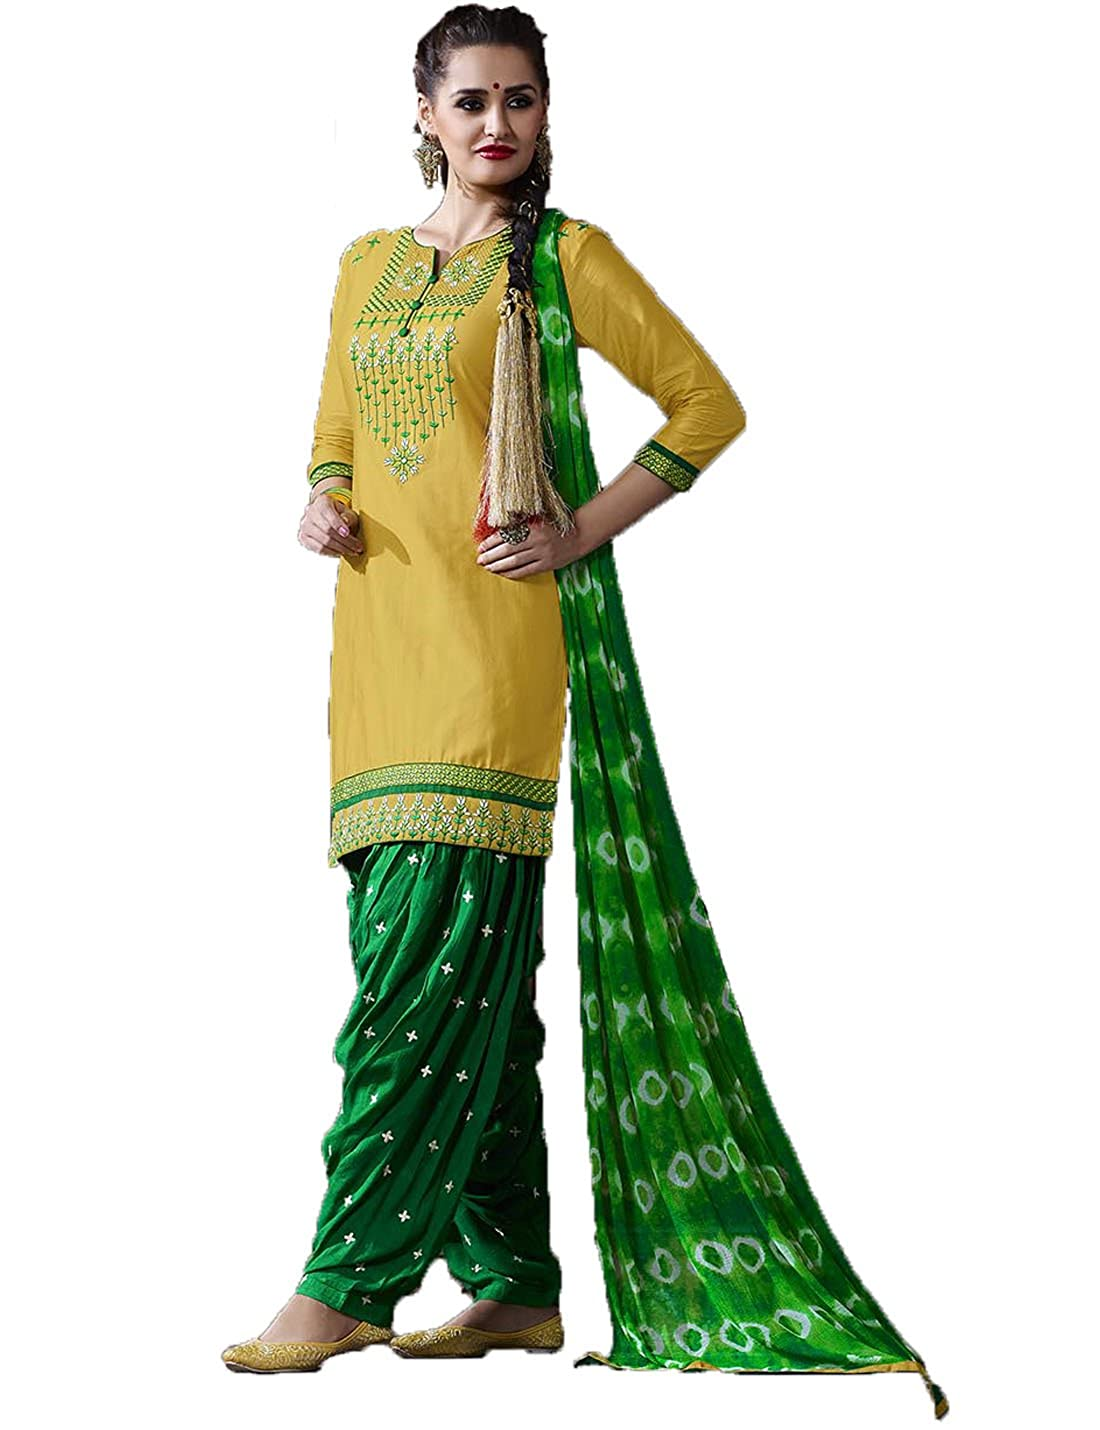 73c2e7634c Jambudi Creation Yellow and Green Punjabi Patiala Embroidered Salwar Suit  Dress Material: Amazon.in: Clothing & Accessories